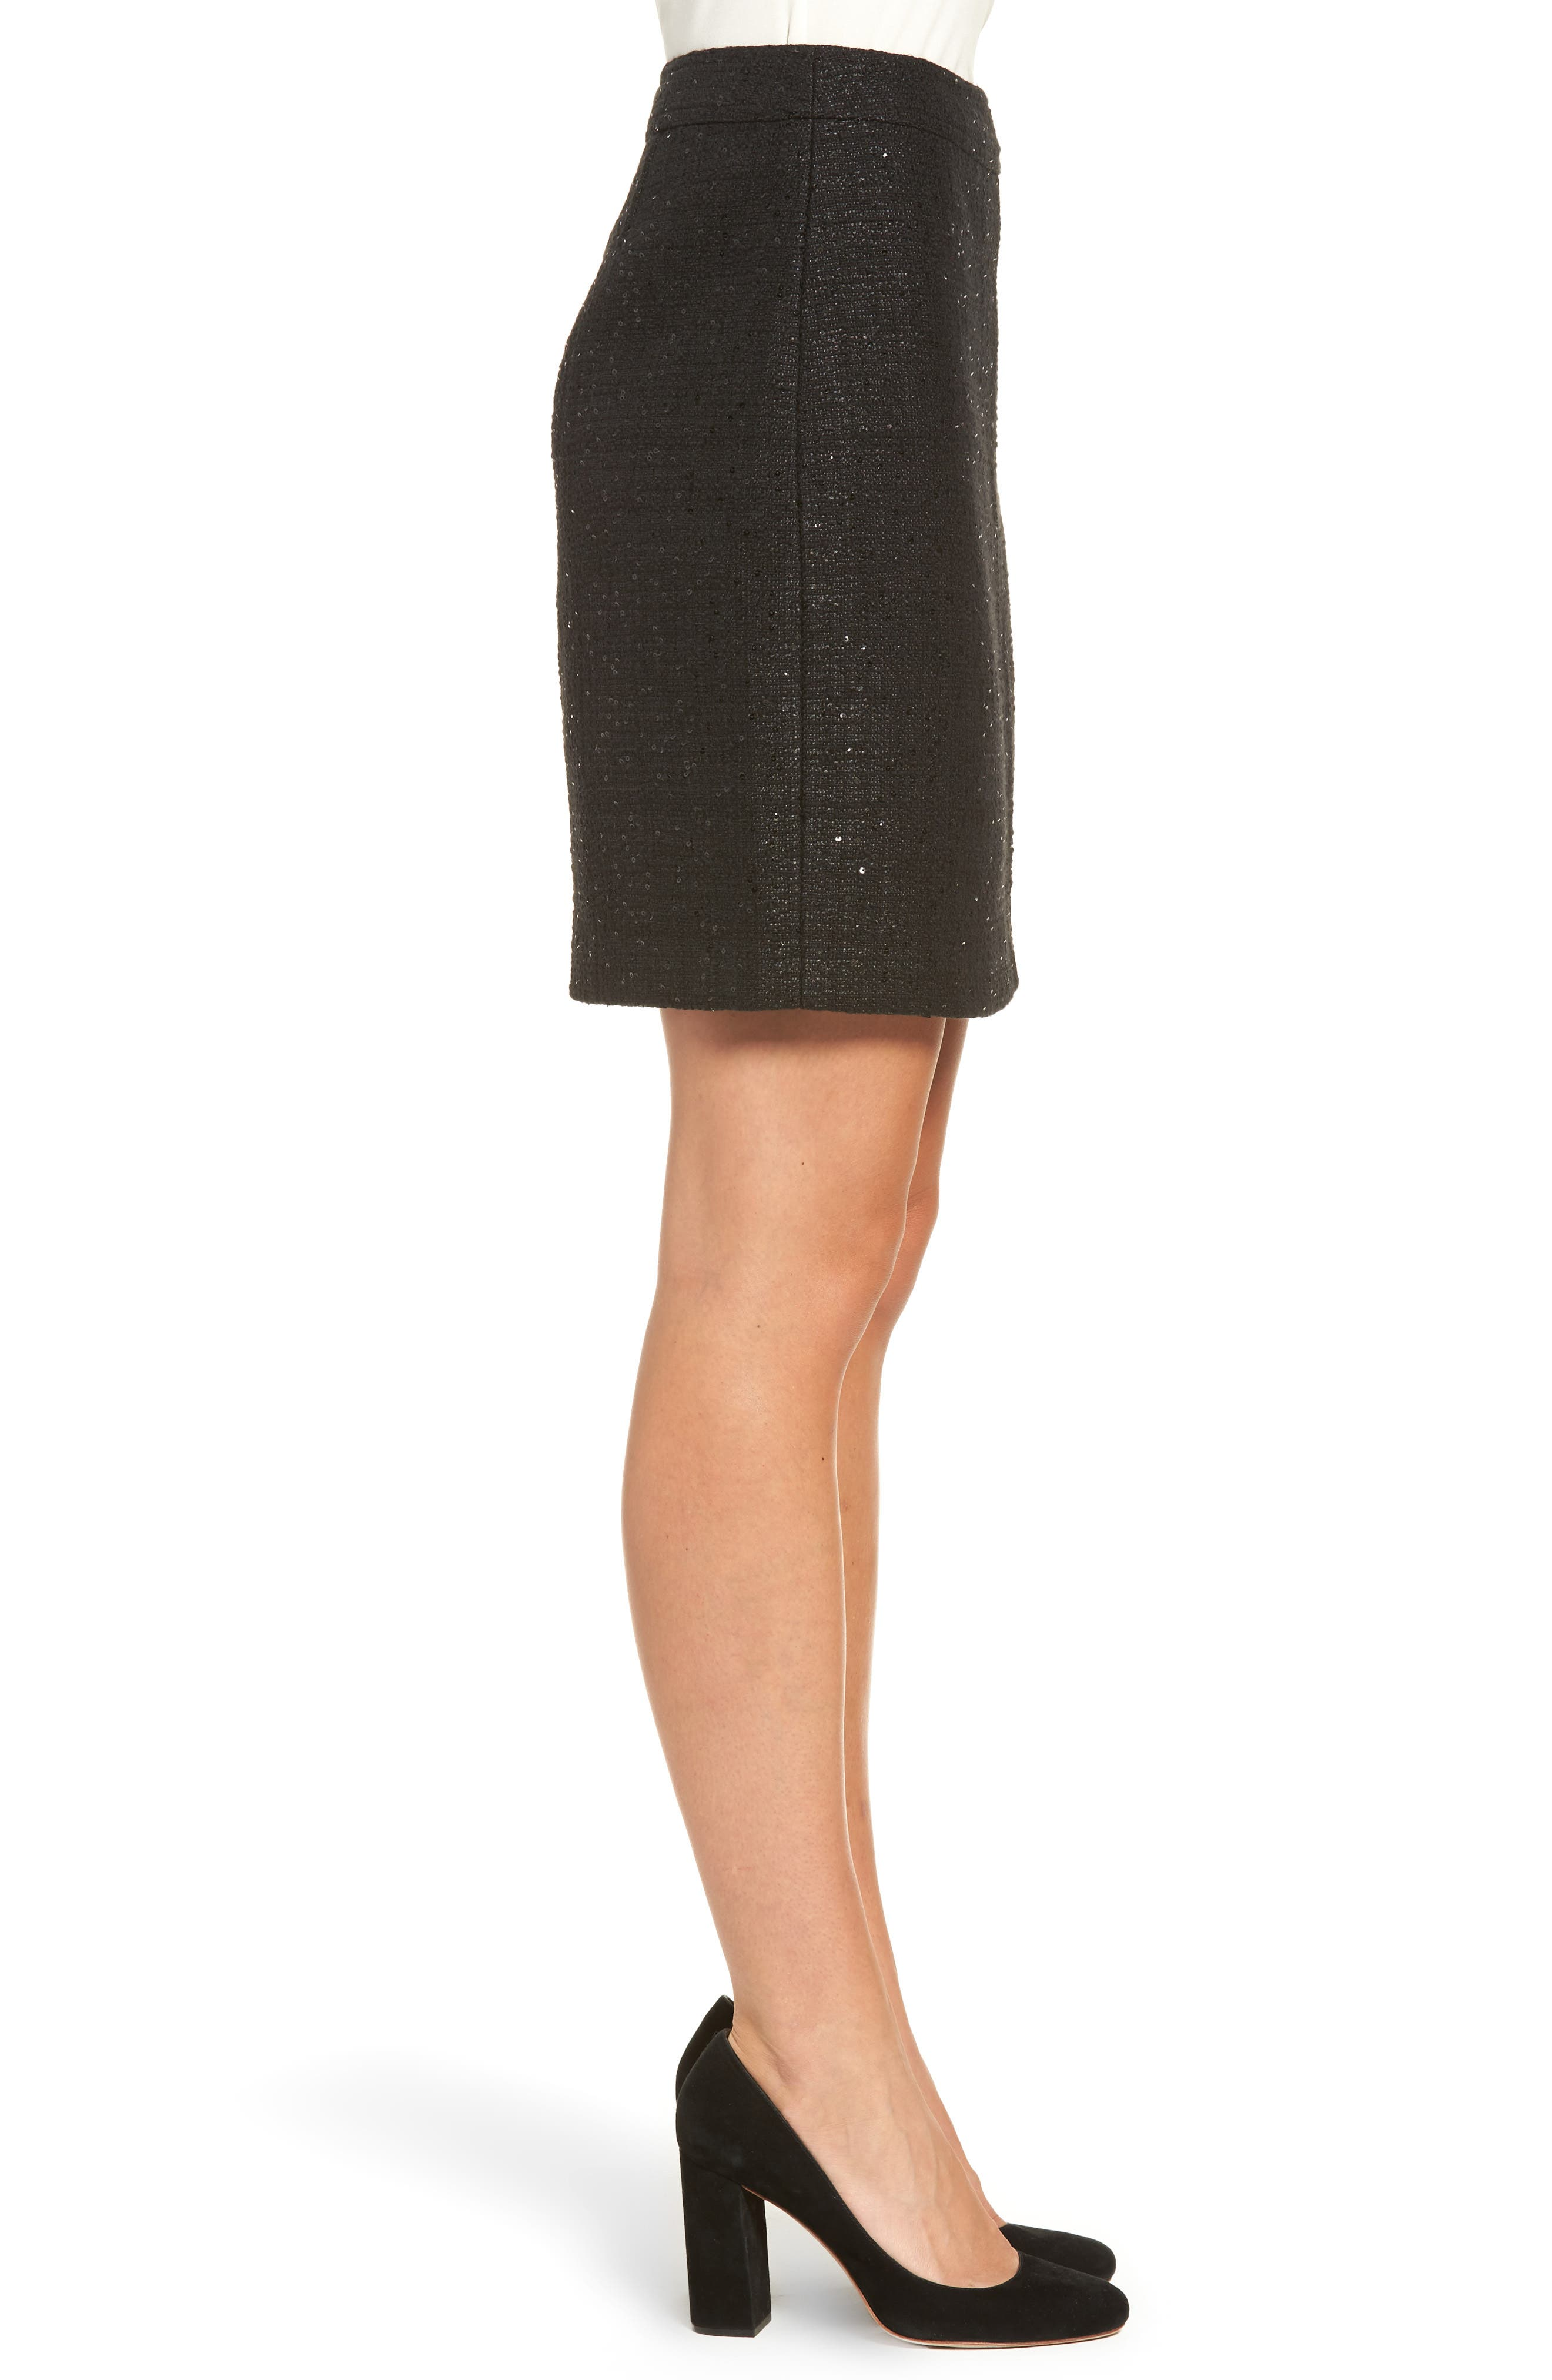 Sequin Tweed Skirt,                             Alternate thumbnail 3, color,                             Black/ Black